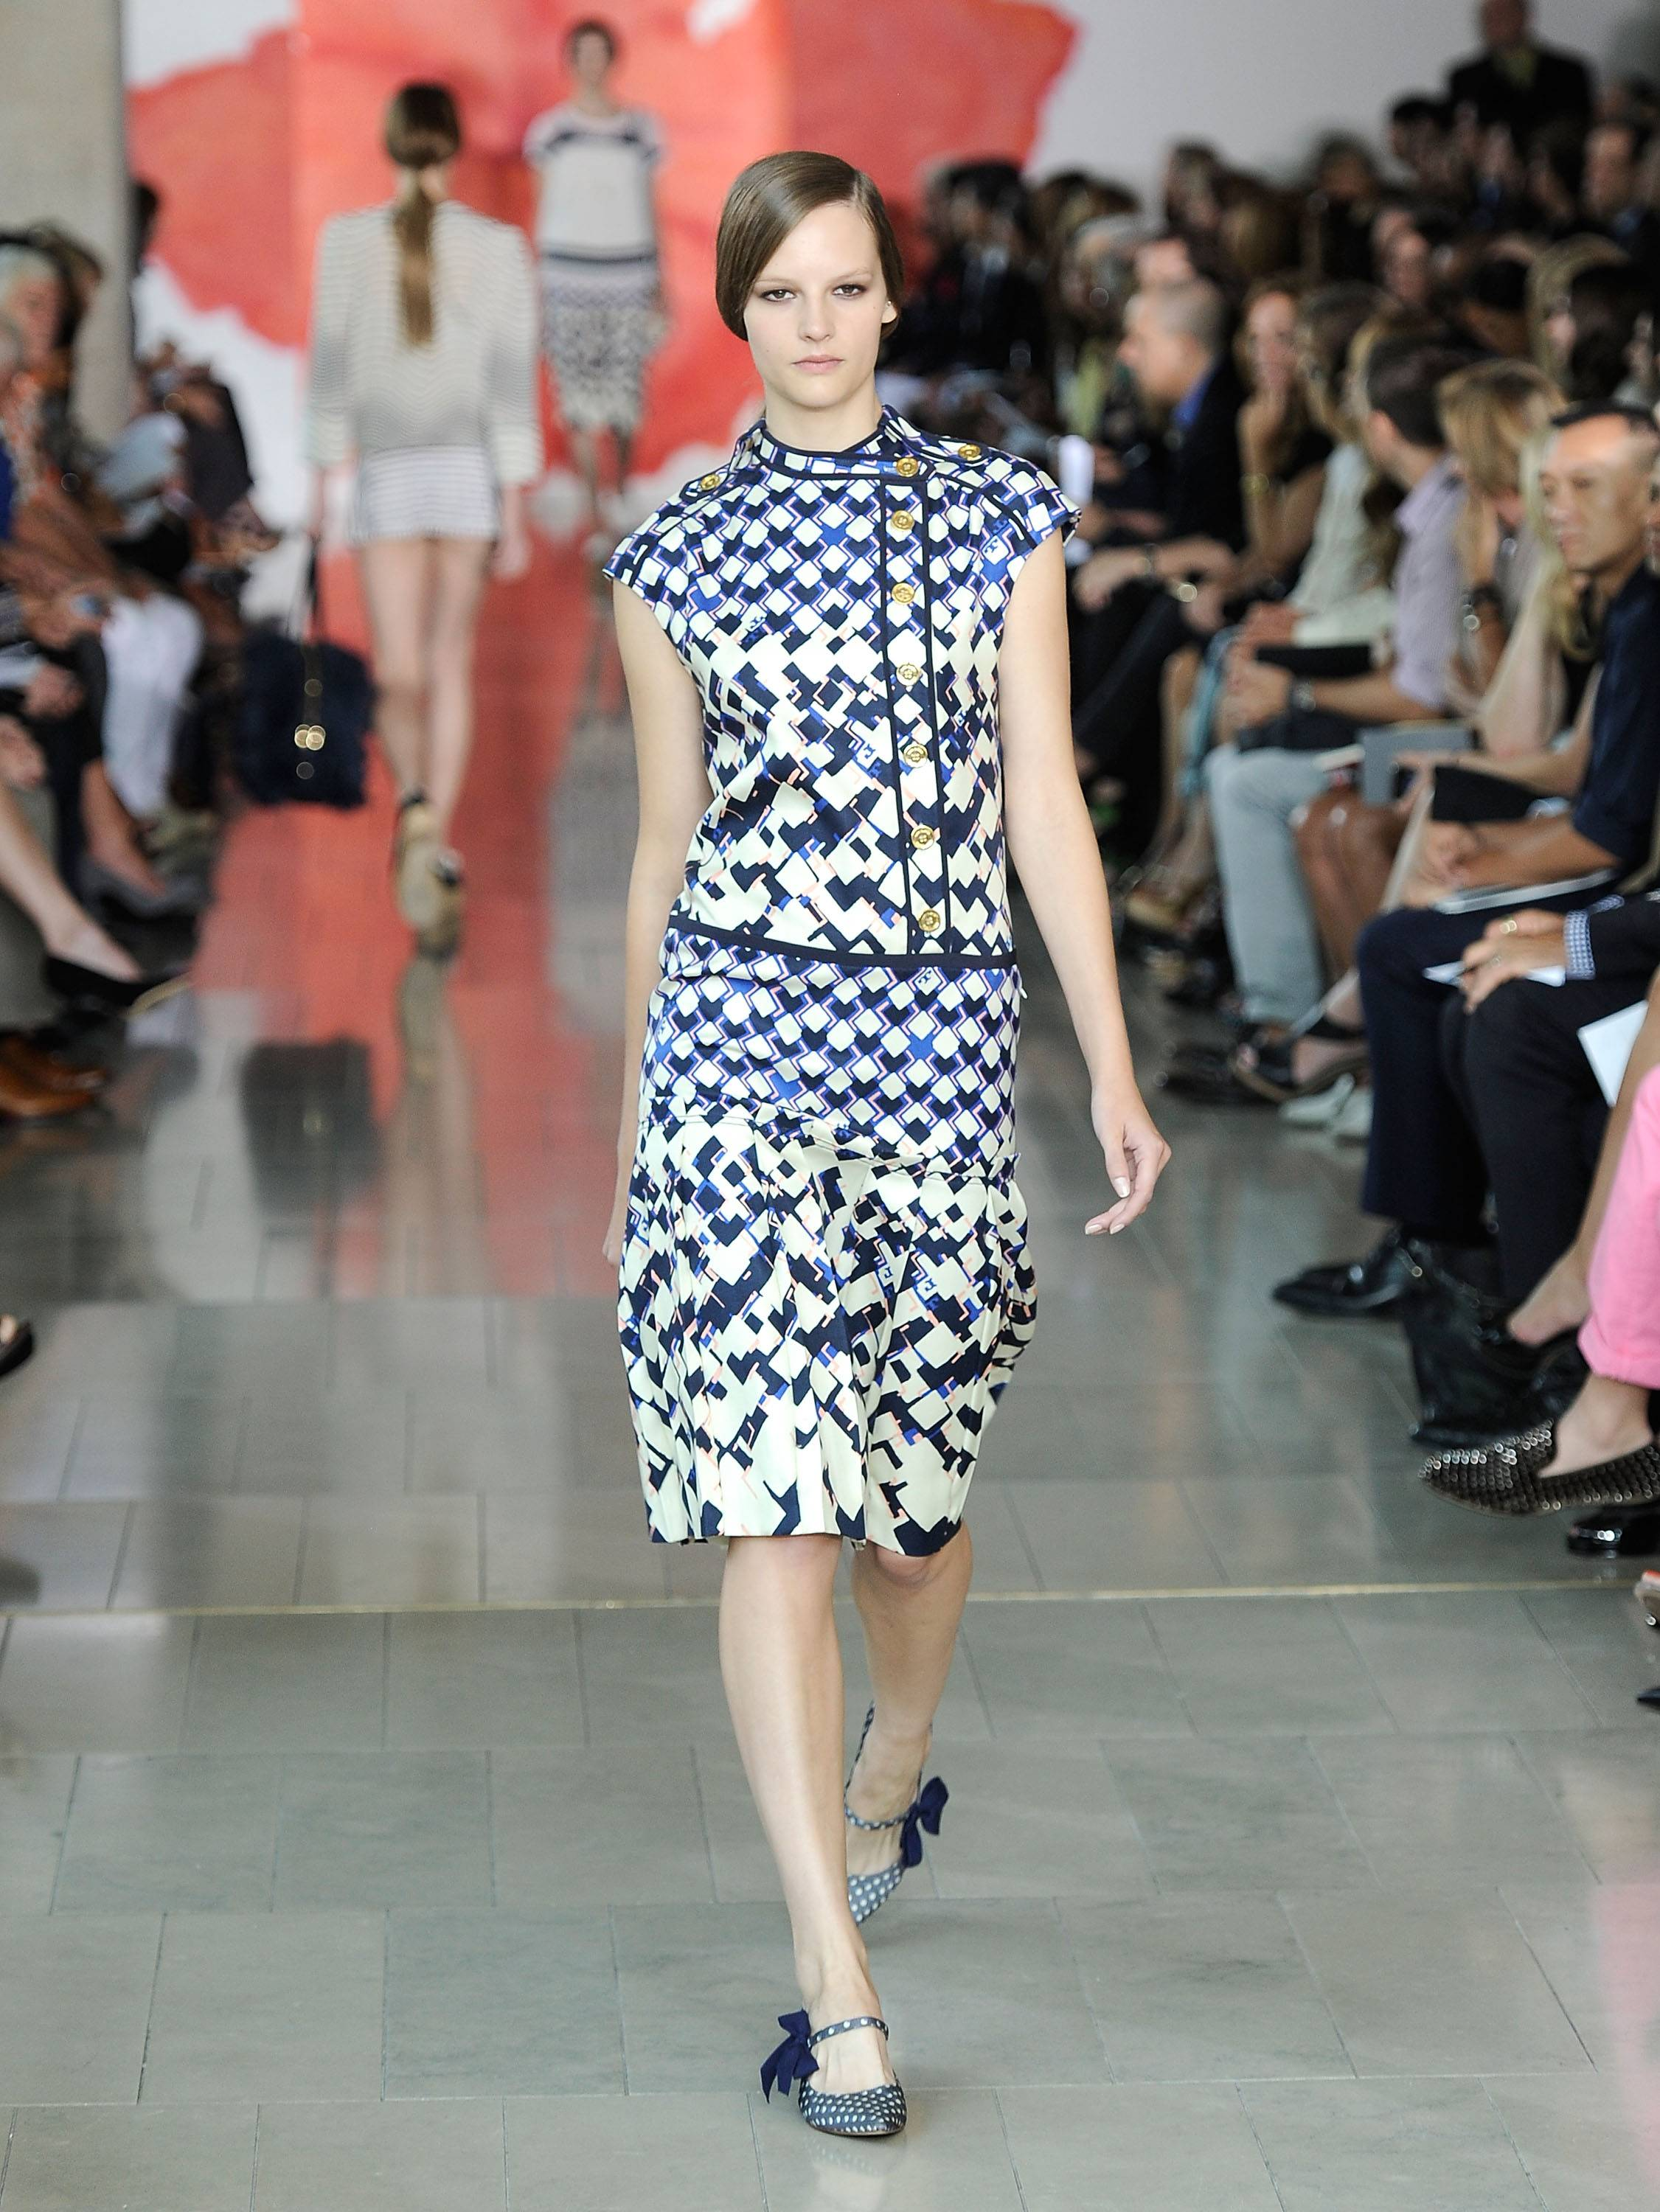 Tory Burch Runway Presentation 4, Mercedes Benz Fashion Week, s/s 2012